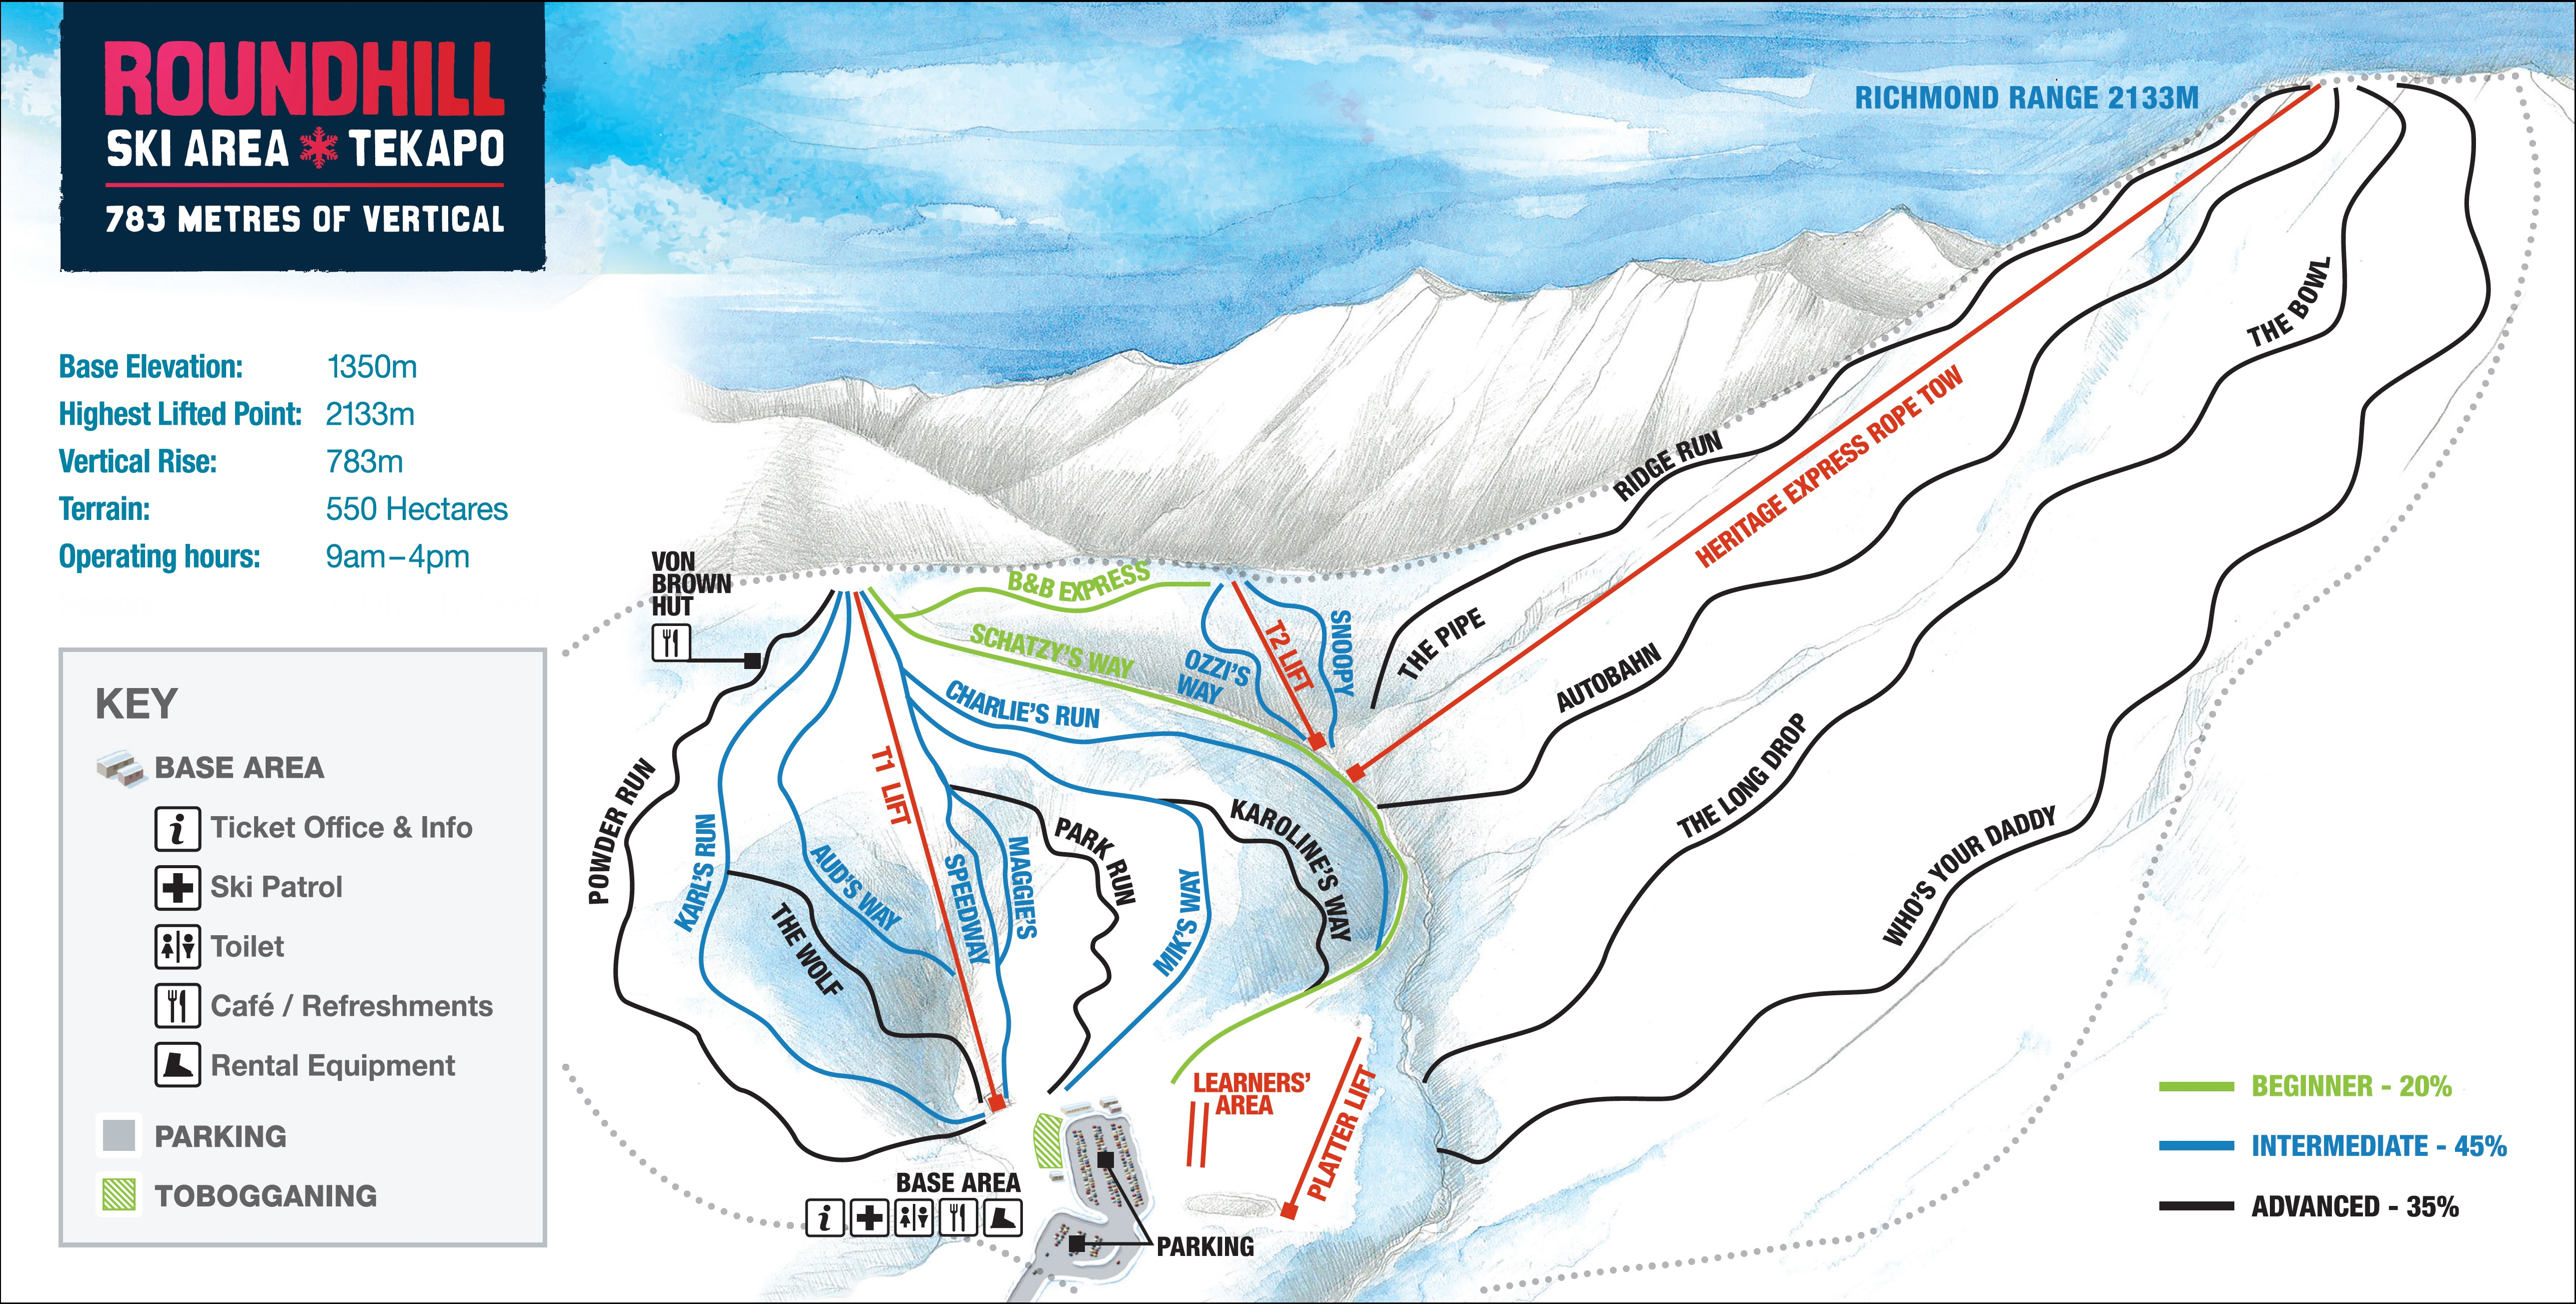 Roundhill Piste / Trail Map